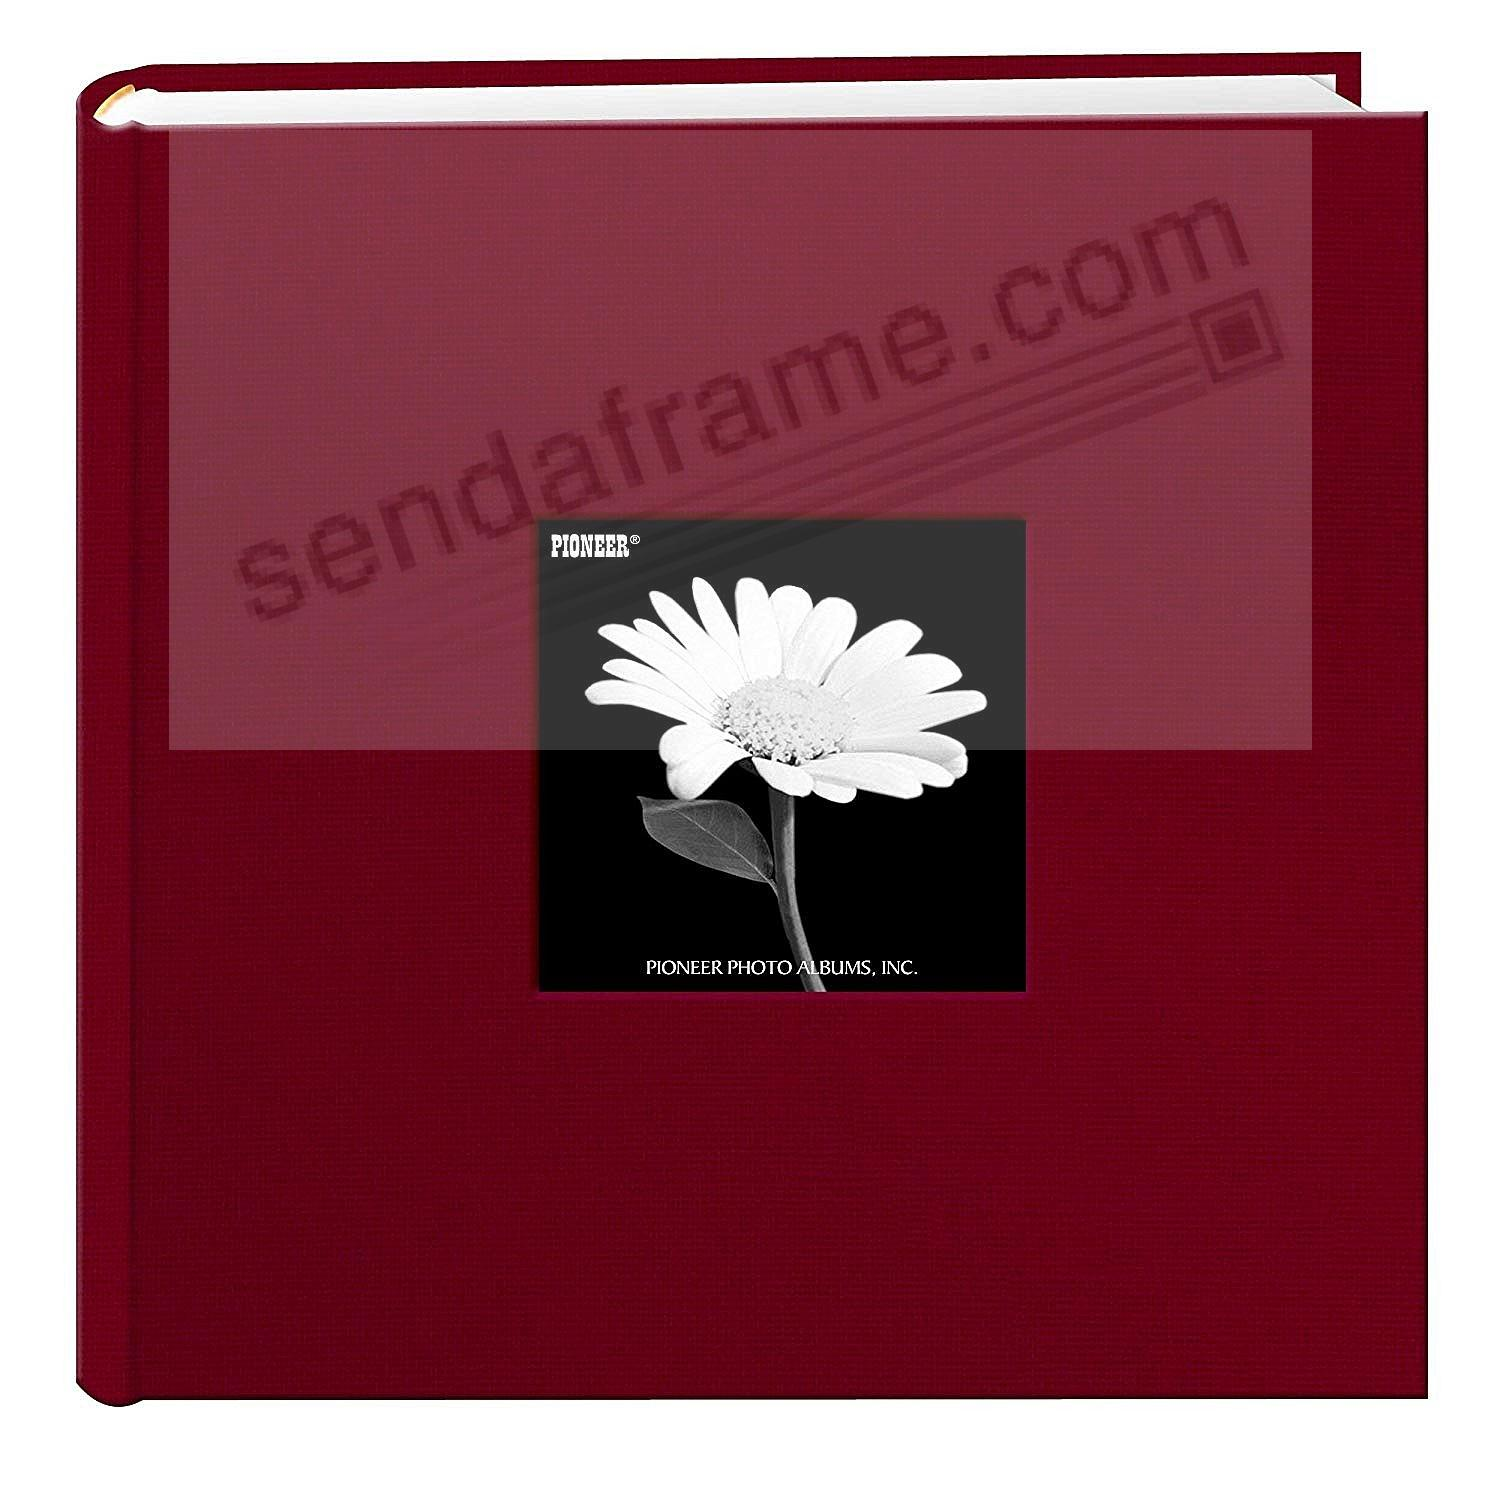 CHAMPION-BURGUNDY Cloth 2-up frame cover photo album by Pioneer®